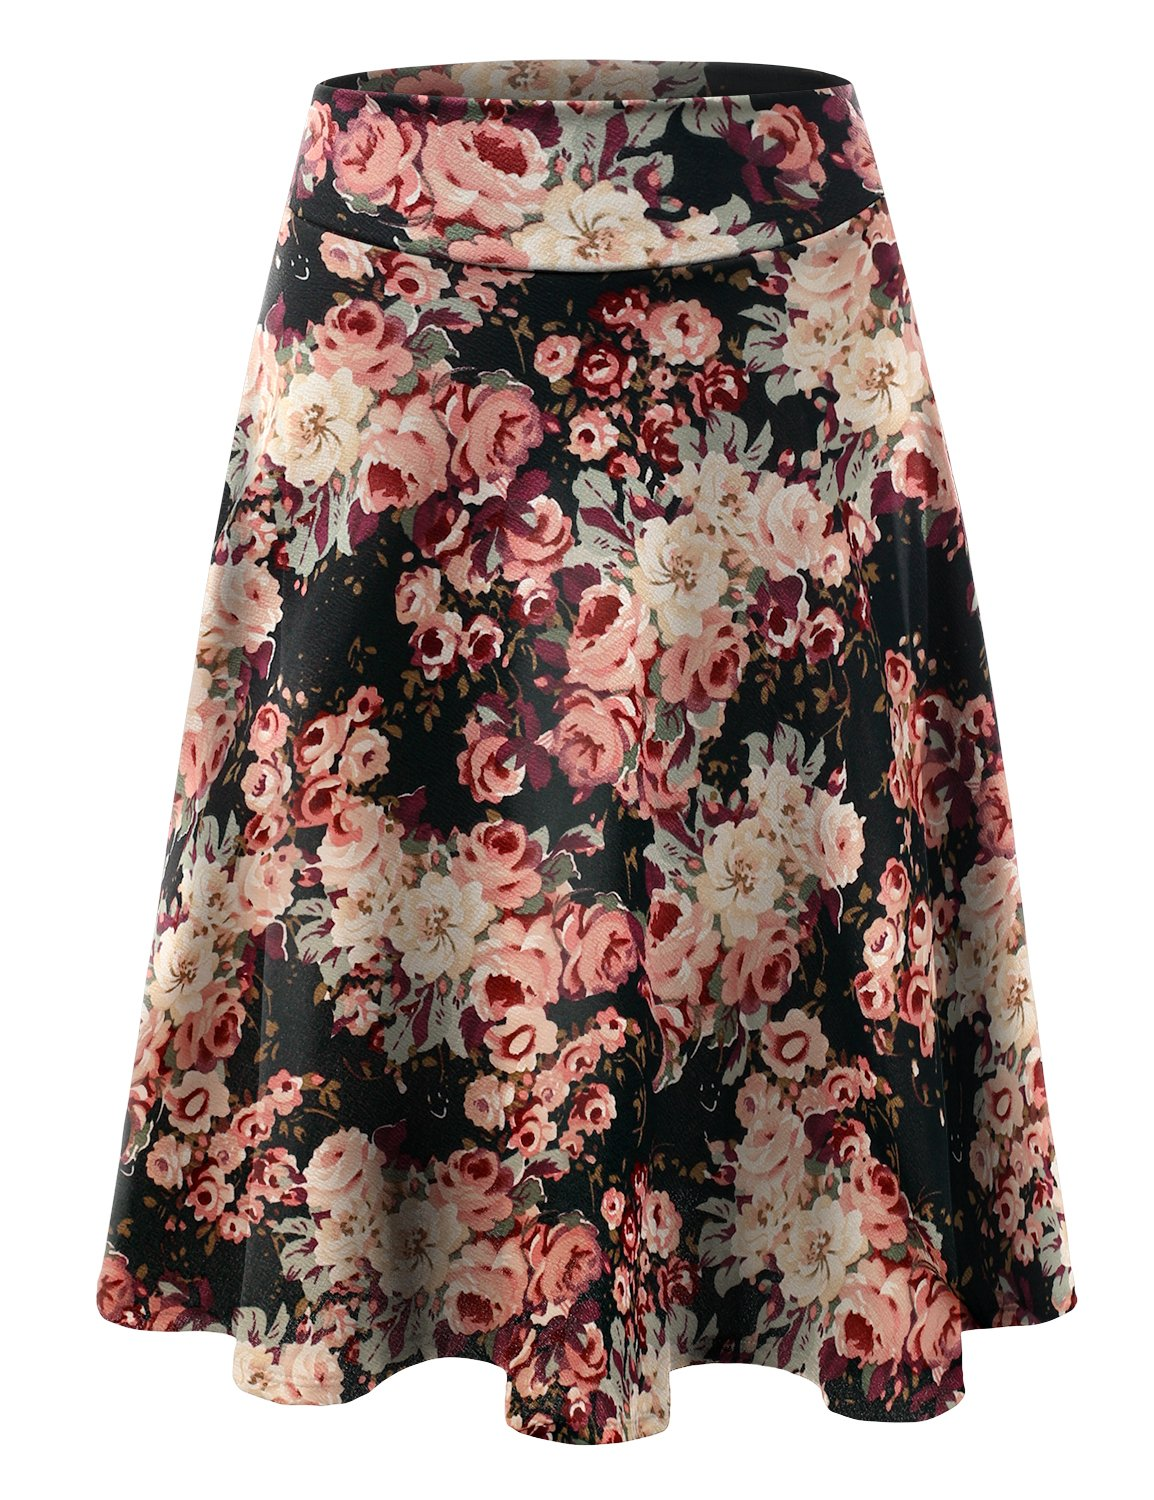 832819c57b Get Quotations · Doublju Elastic High Waist A-Line Flared Midi Skirt for  Women with Plus Size (